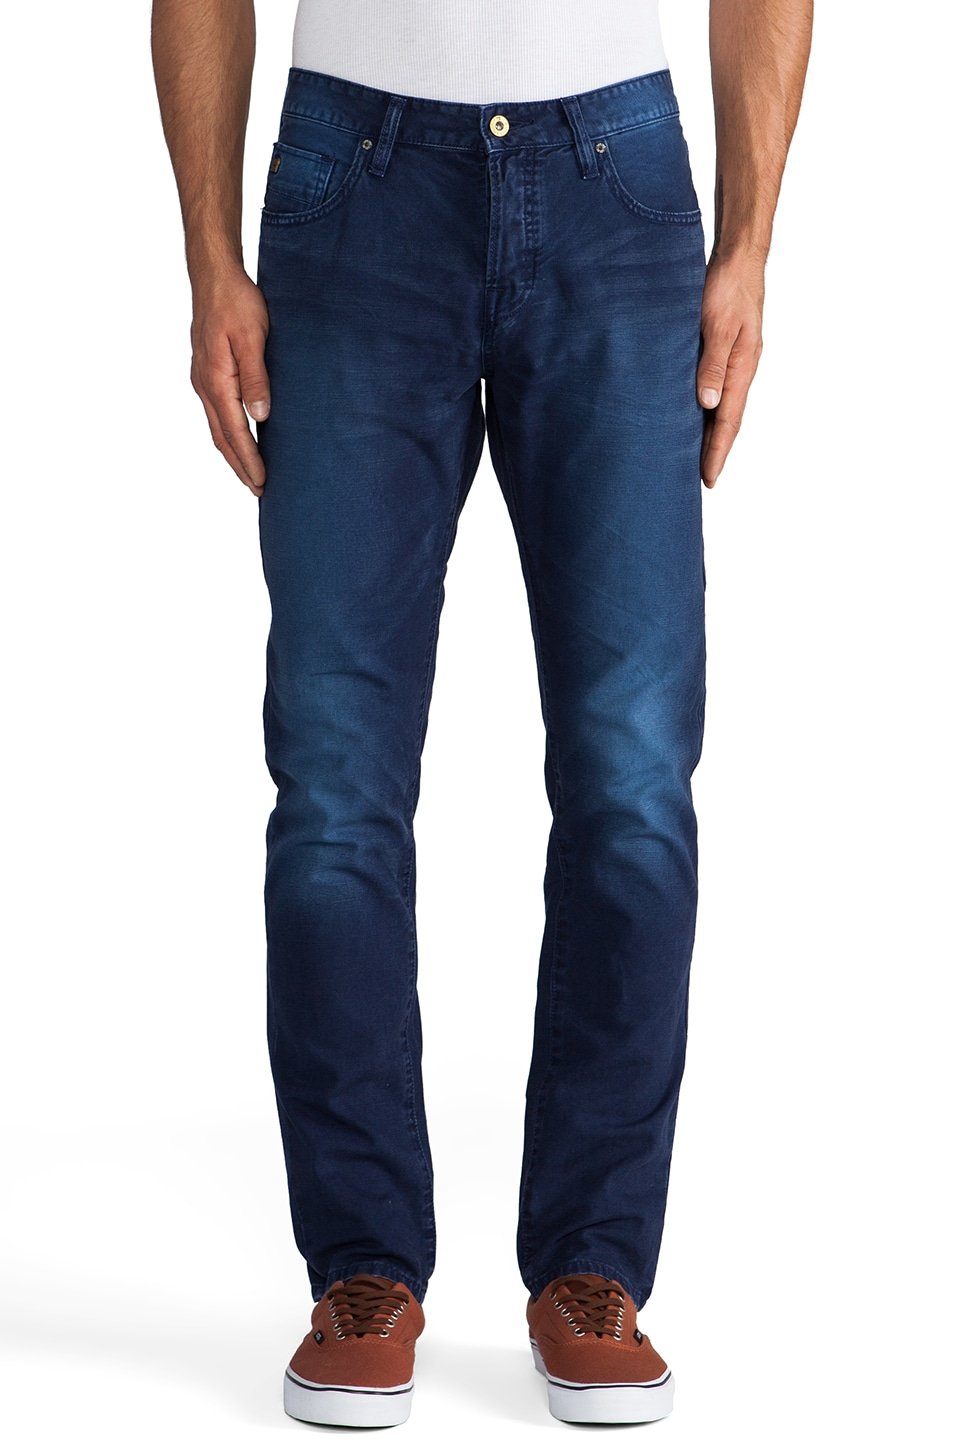 Scotch & Soda Ralston 5 Pocket in Indigo